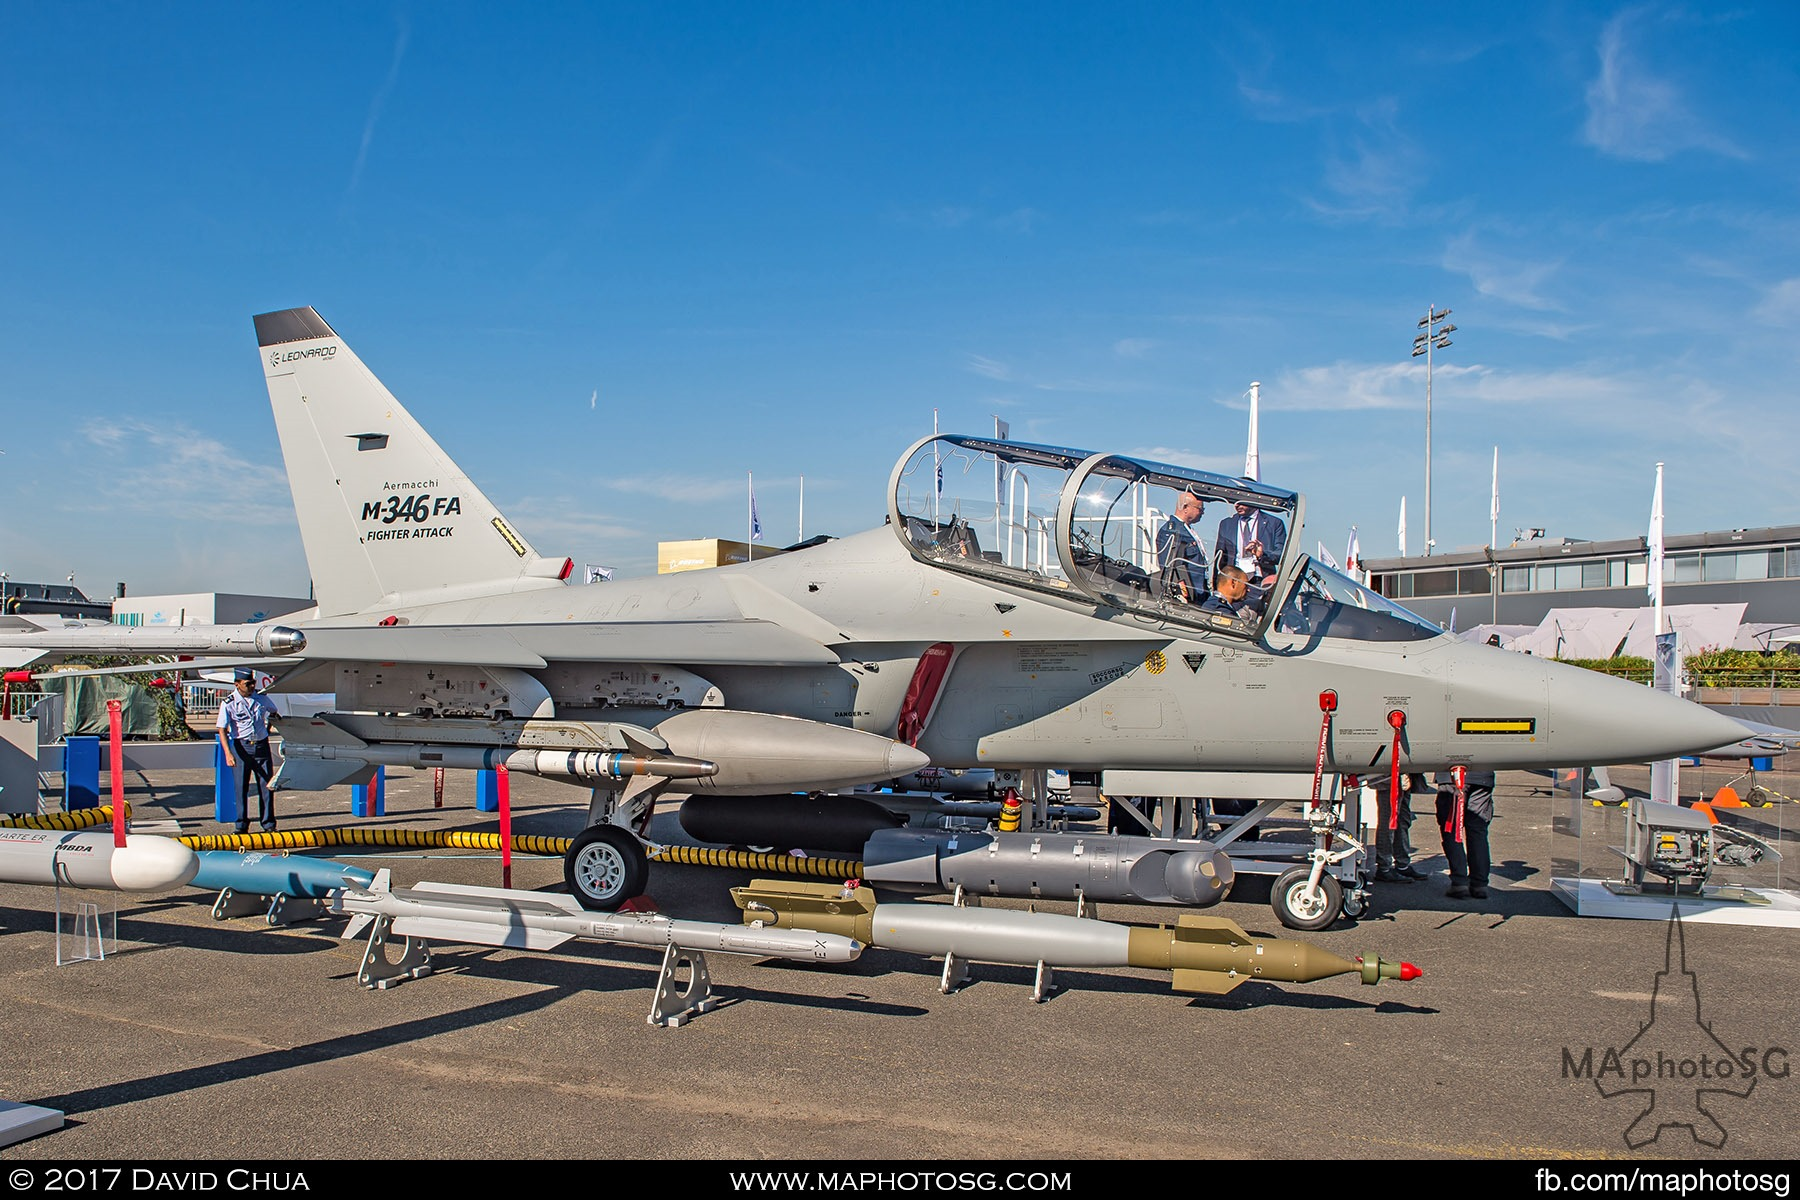 13. Leonardo has shown for the first time the M-346FA (Fighter Attack). Its latest evolution of the M-346 platform. This new version of the M-346 will take its place next to the two existing variants of the aircraft: the Advanced Jet Trainer and the multi-role M-346FT (Fighter Trainer). The M-346 Fighter Attack will be equipped with a dedicated variant of the Grifo multi-mode fire control radar, designed and manufactured by Leonardo.